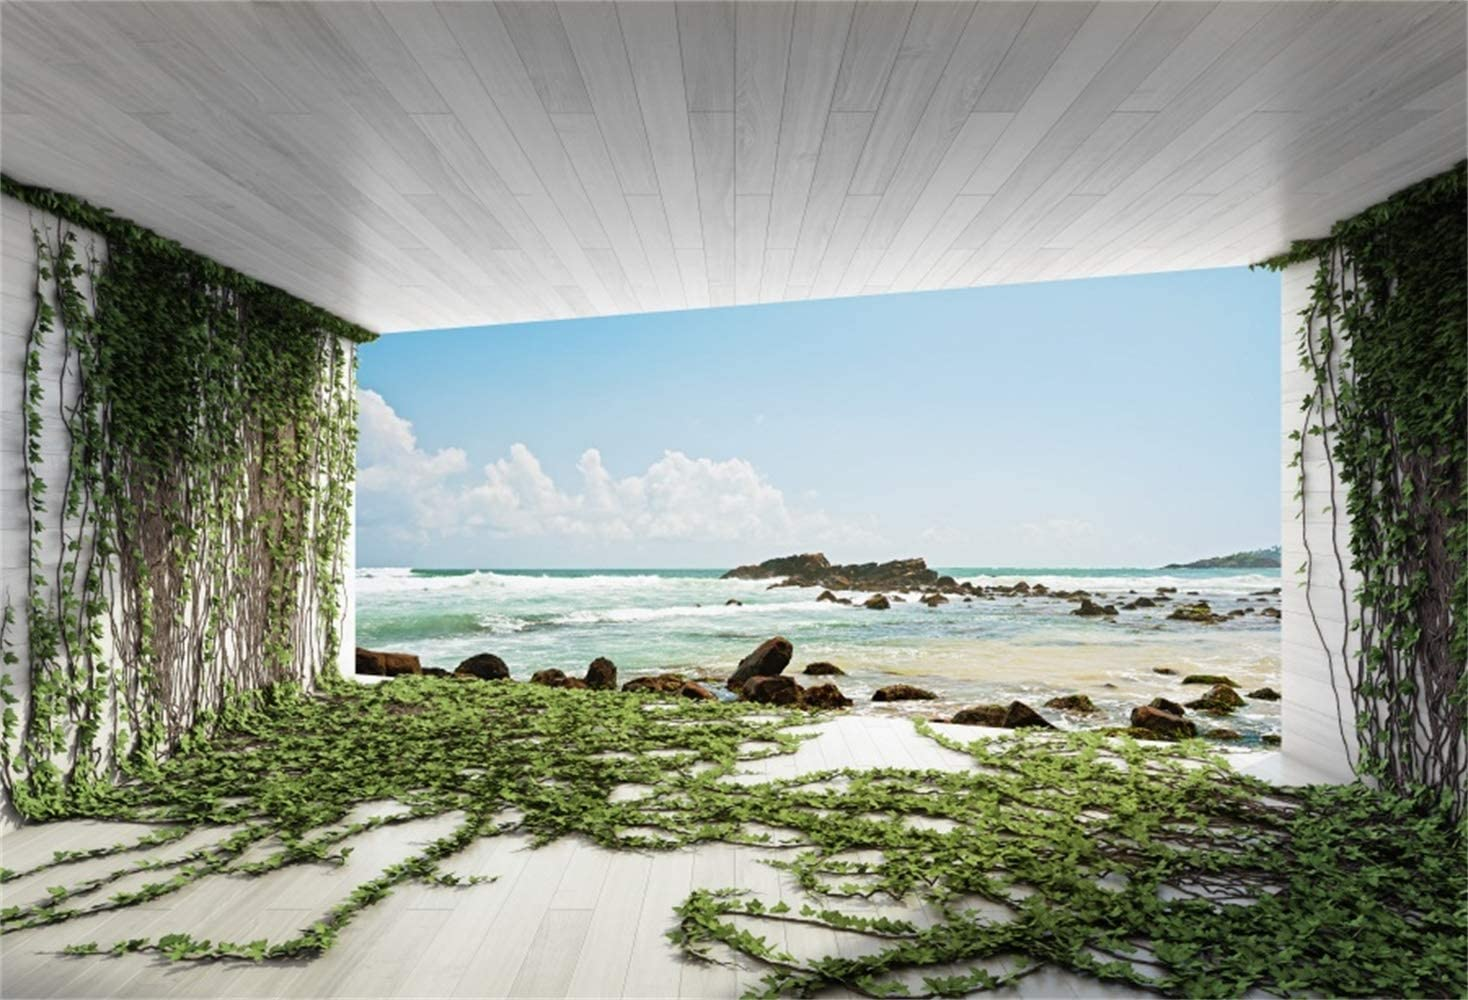 Laeacco 7x5ft Seaside Deserted Sea-View Room Vinyl Photography Background Empty Room Filled with Green Ivy Wooden Wall Floor Towards The Sea Rocks Backdrop Family Couples Holiday Vacation Studio